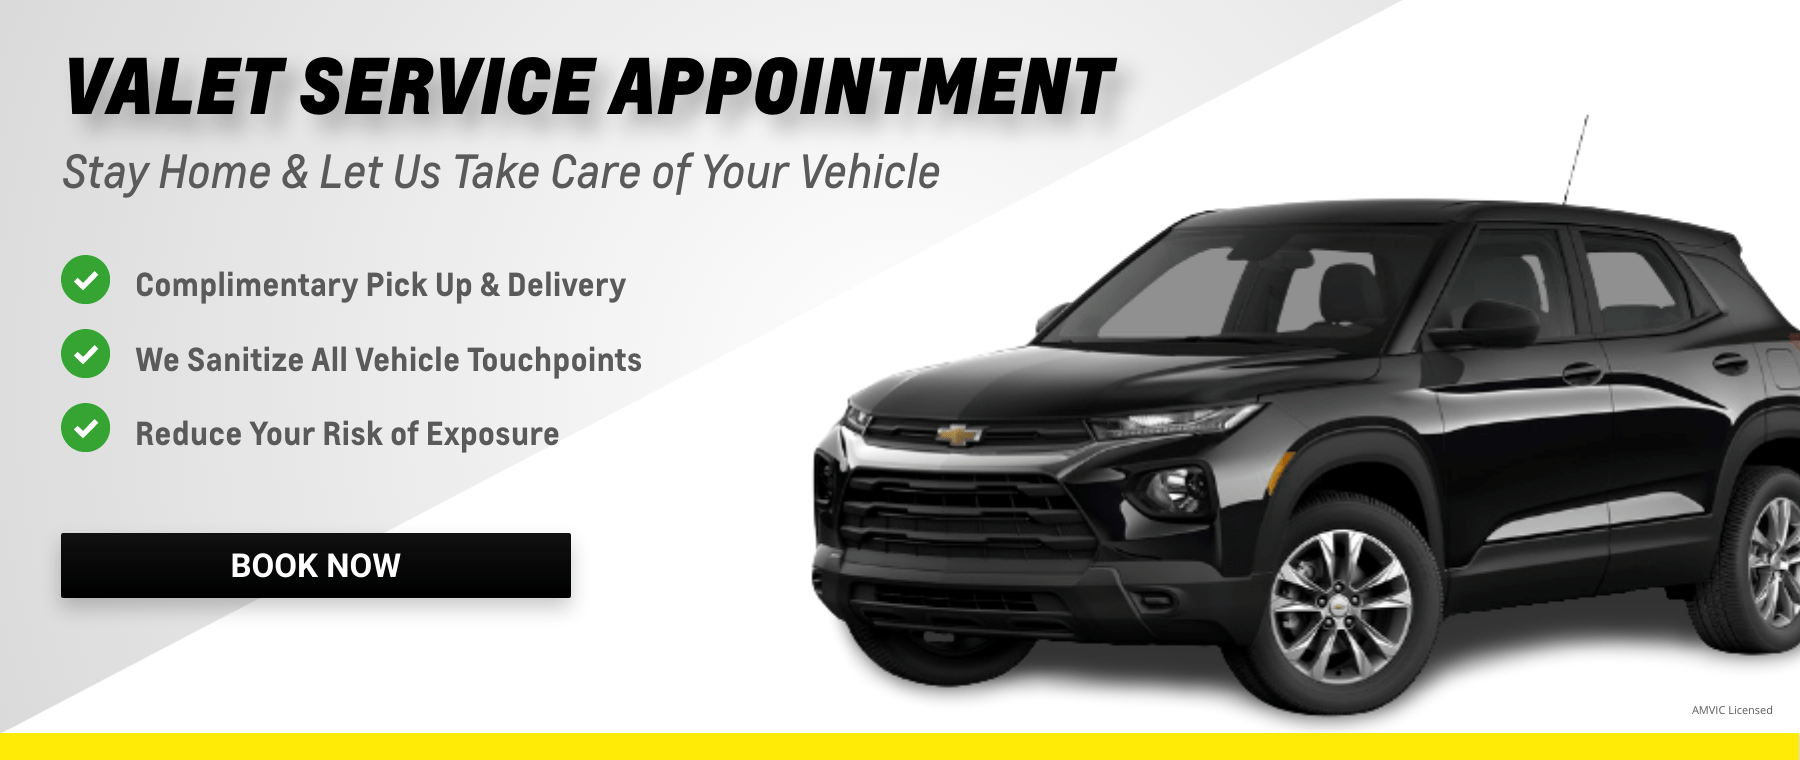 Valet Service Appointment – LWC-1800x760px-Customsize1